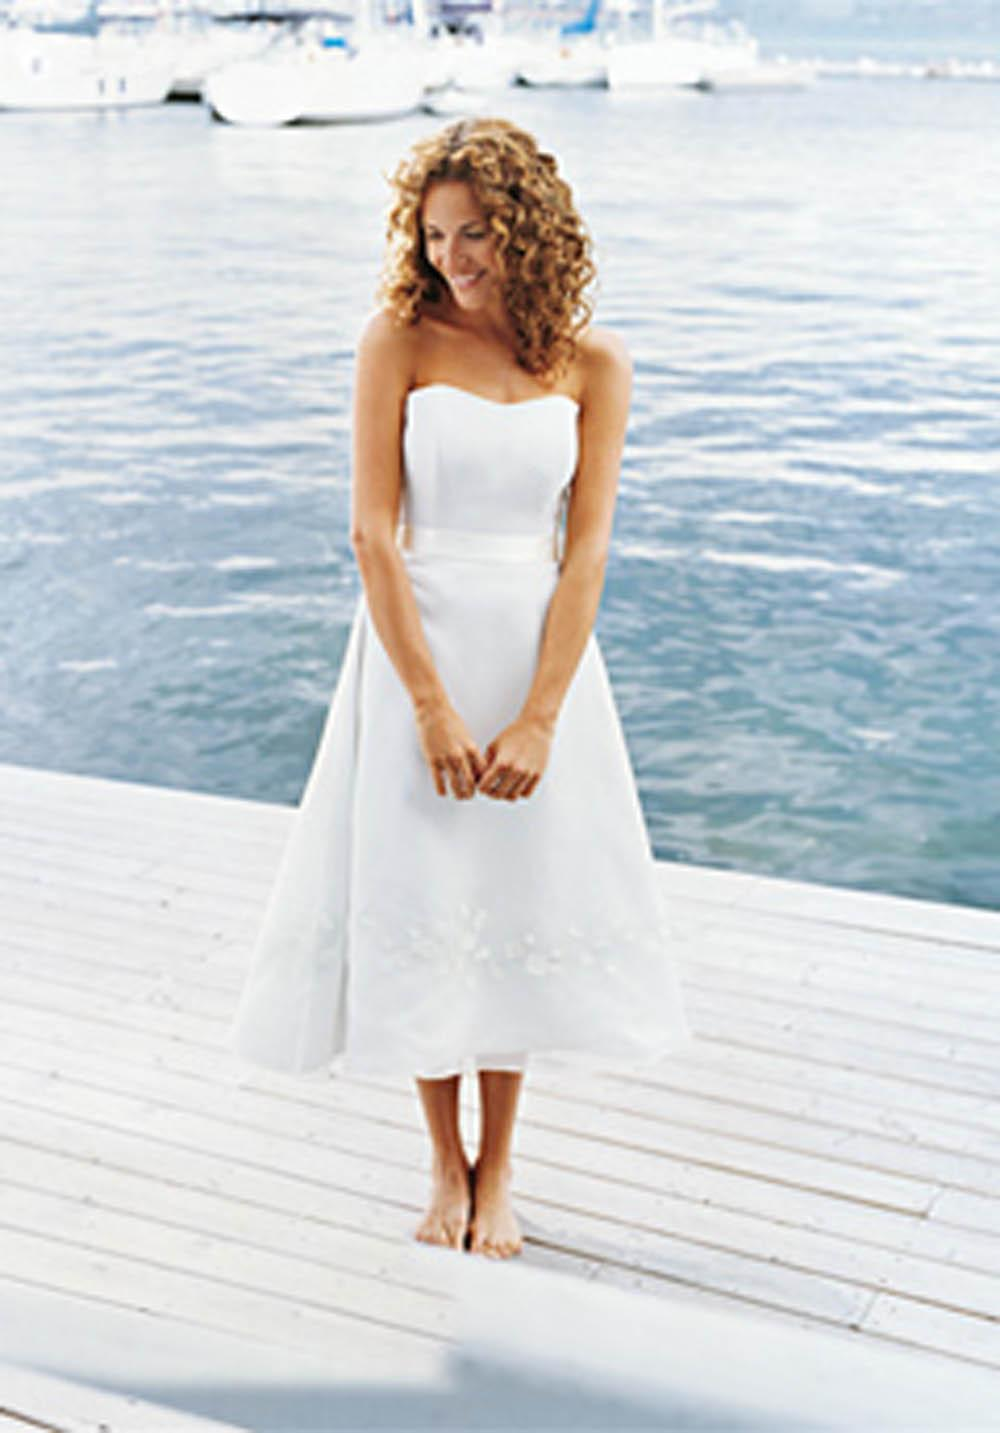 Wedding Dresses For Casual Wedding : Hilary s casual beach wedding gowns